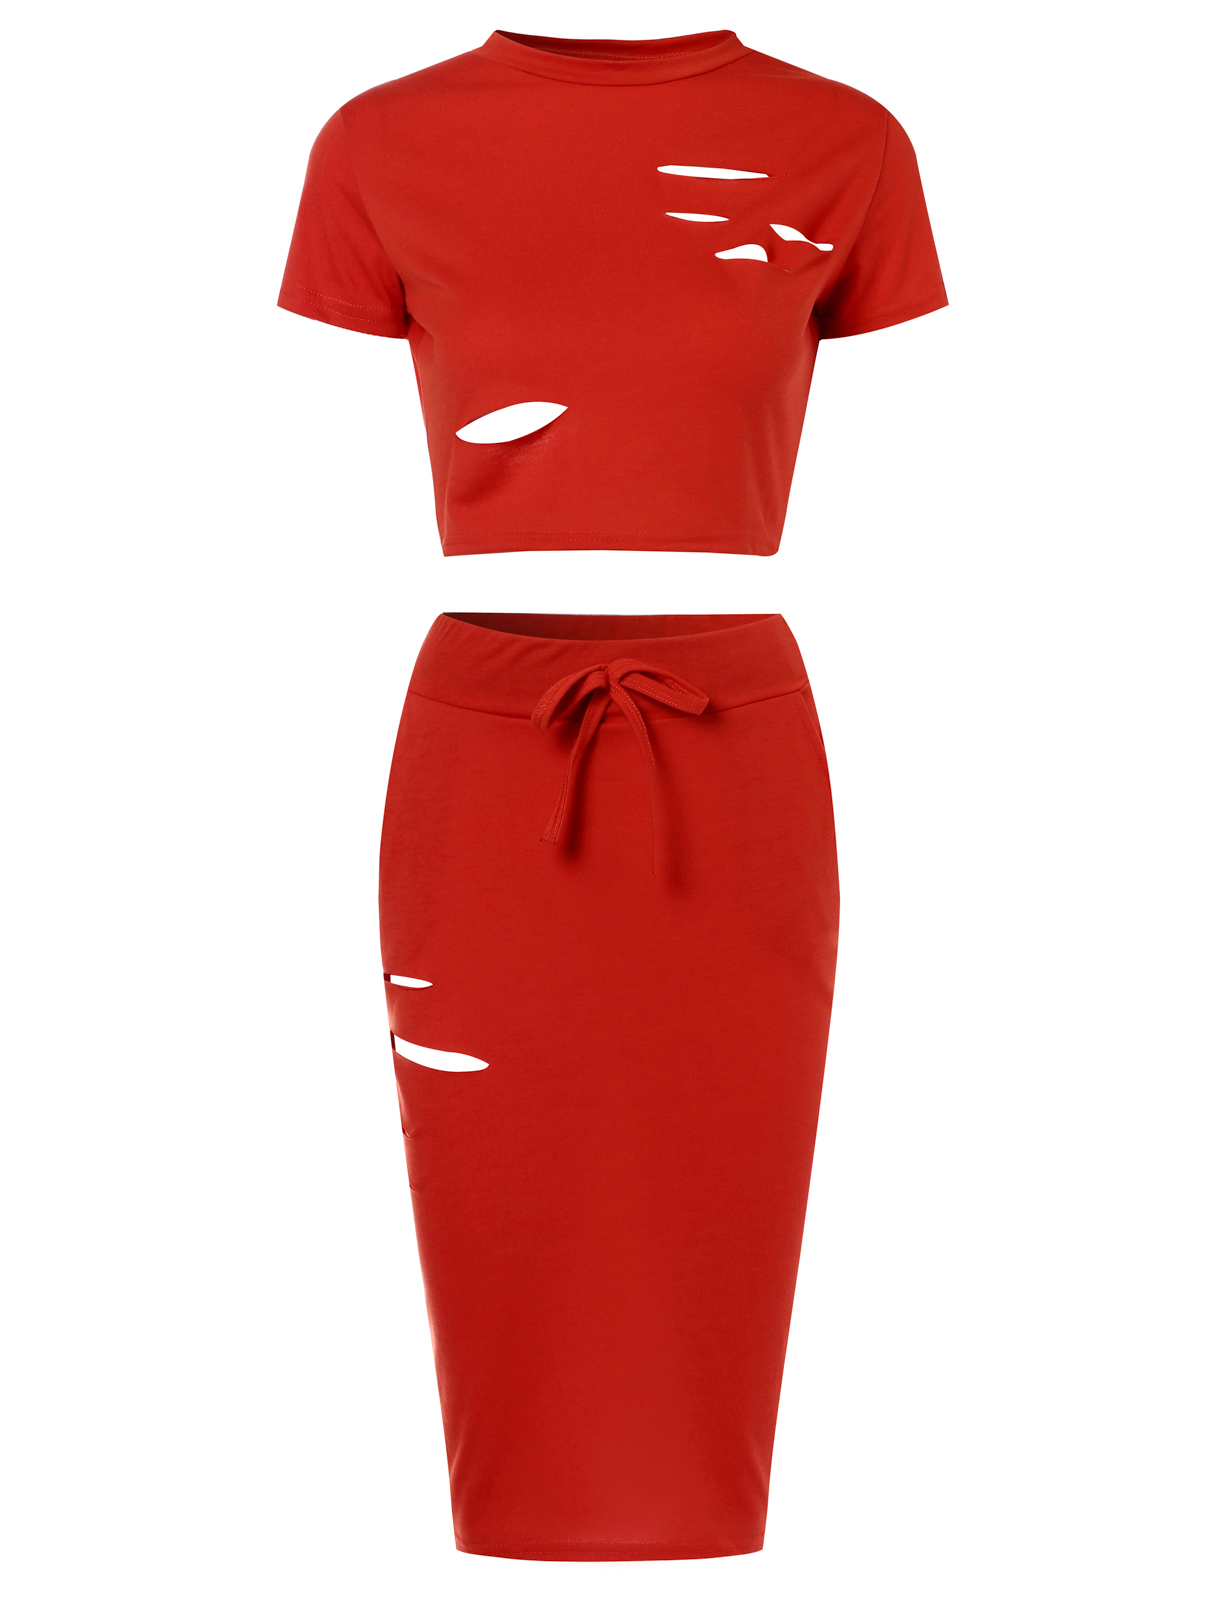 Coral Sexy Ripped Holes Crop Top and Skirt Two Piece Outfits holes